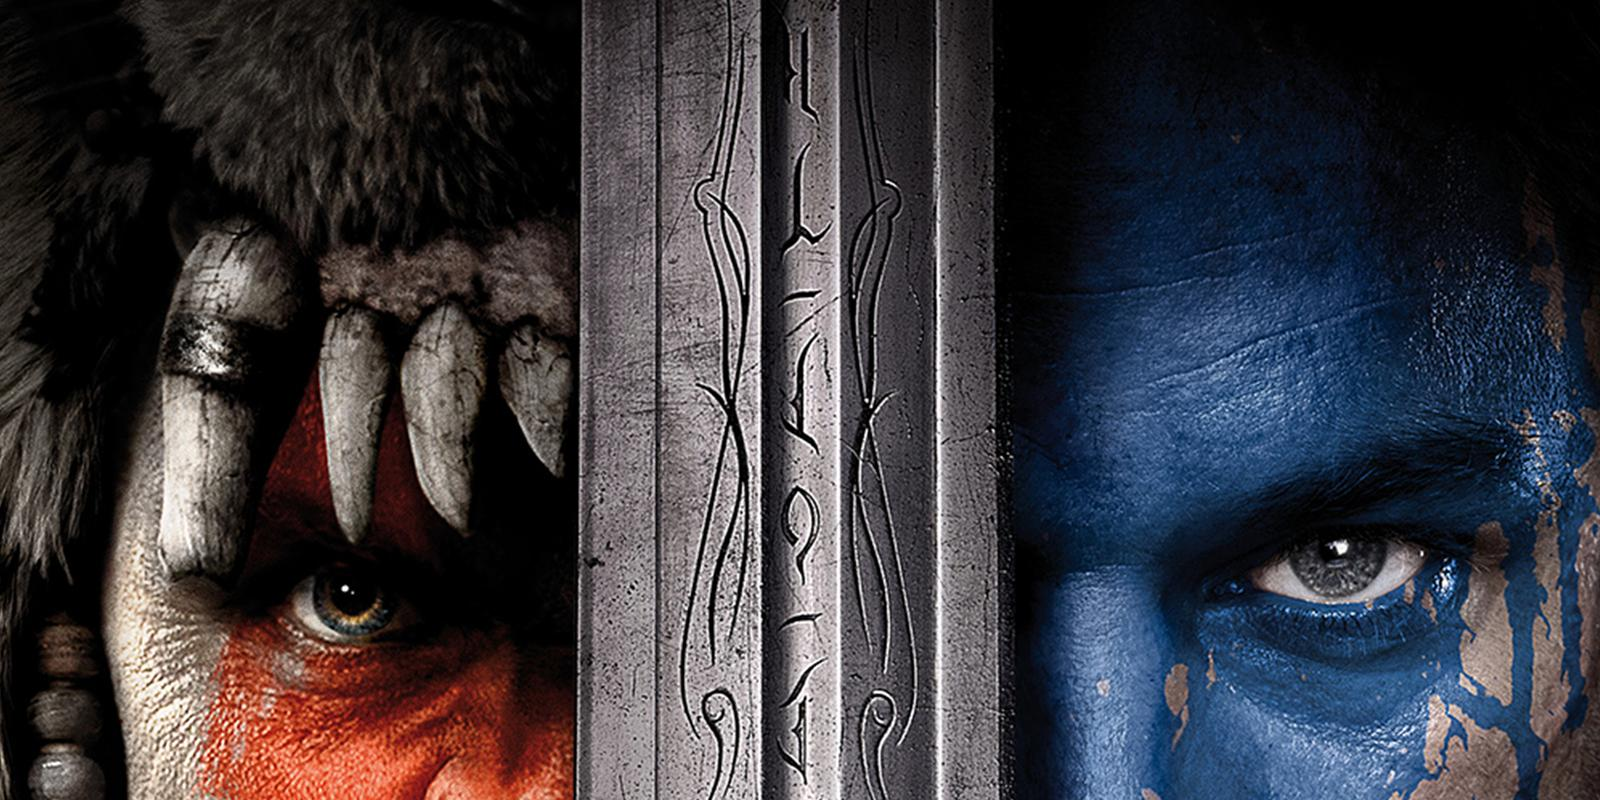 warcraft  the beginning poster revealed ahead of trailer release on friday